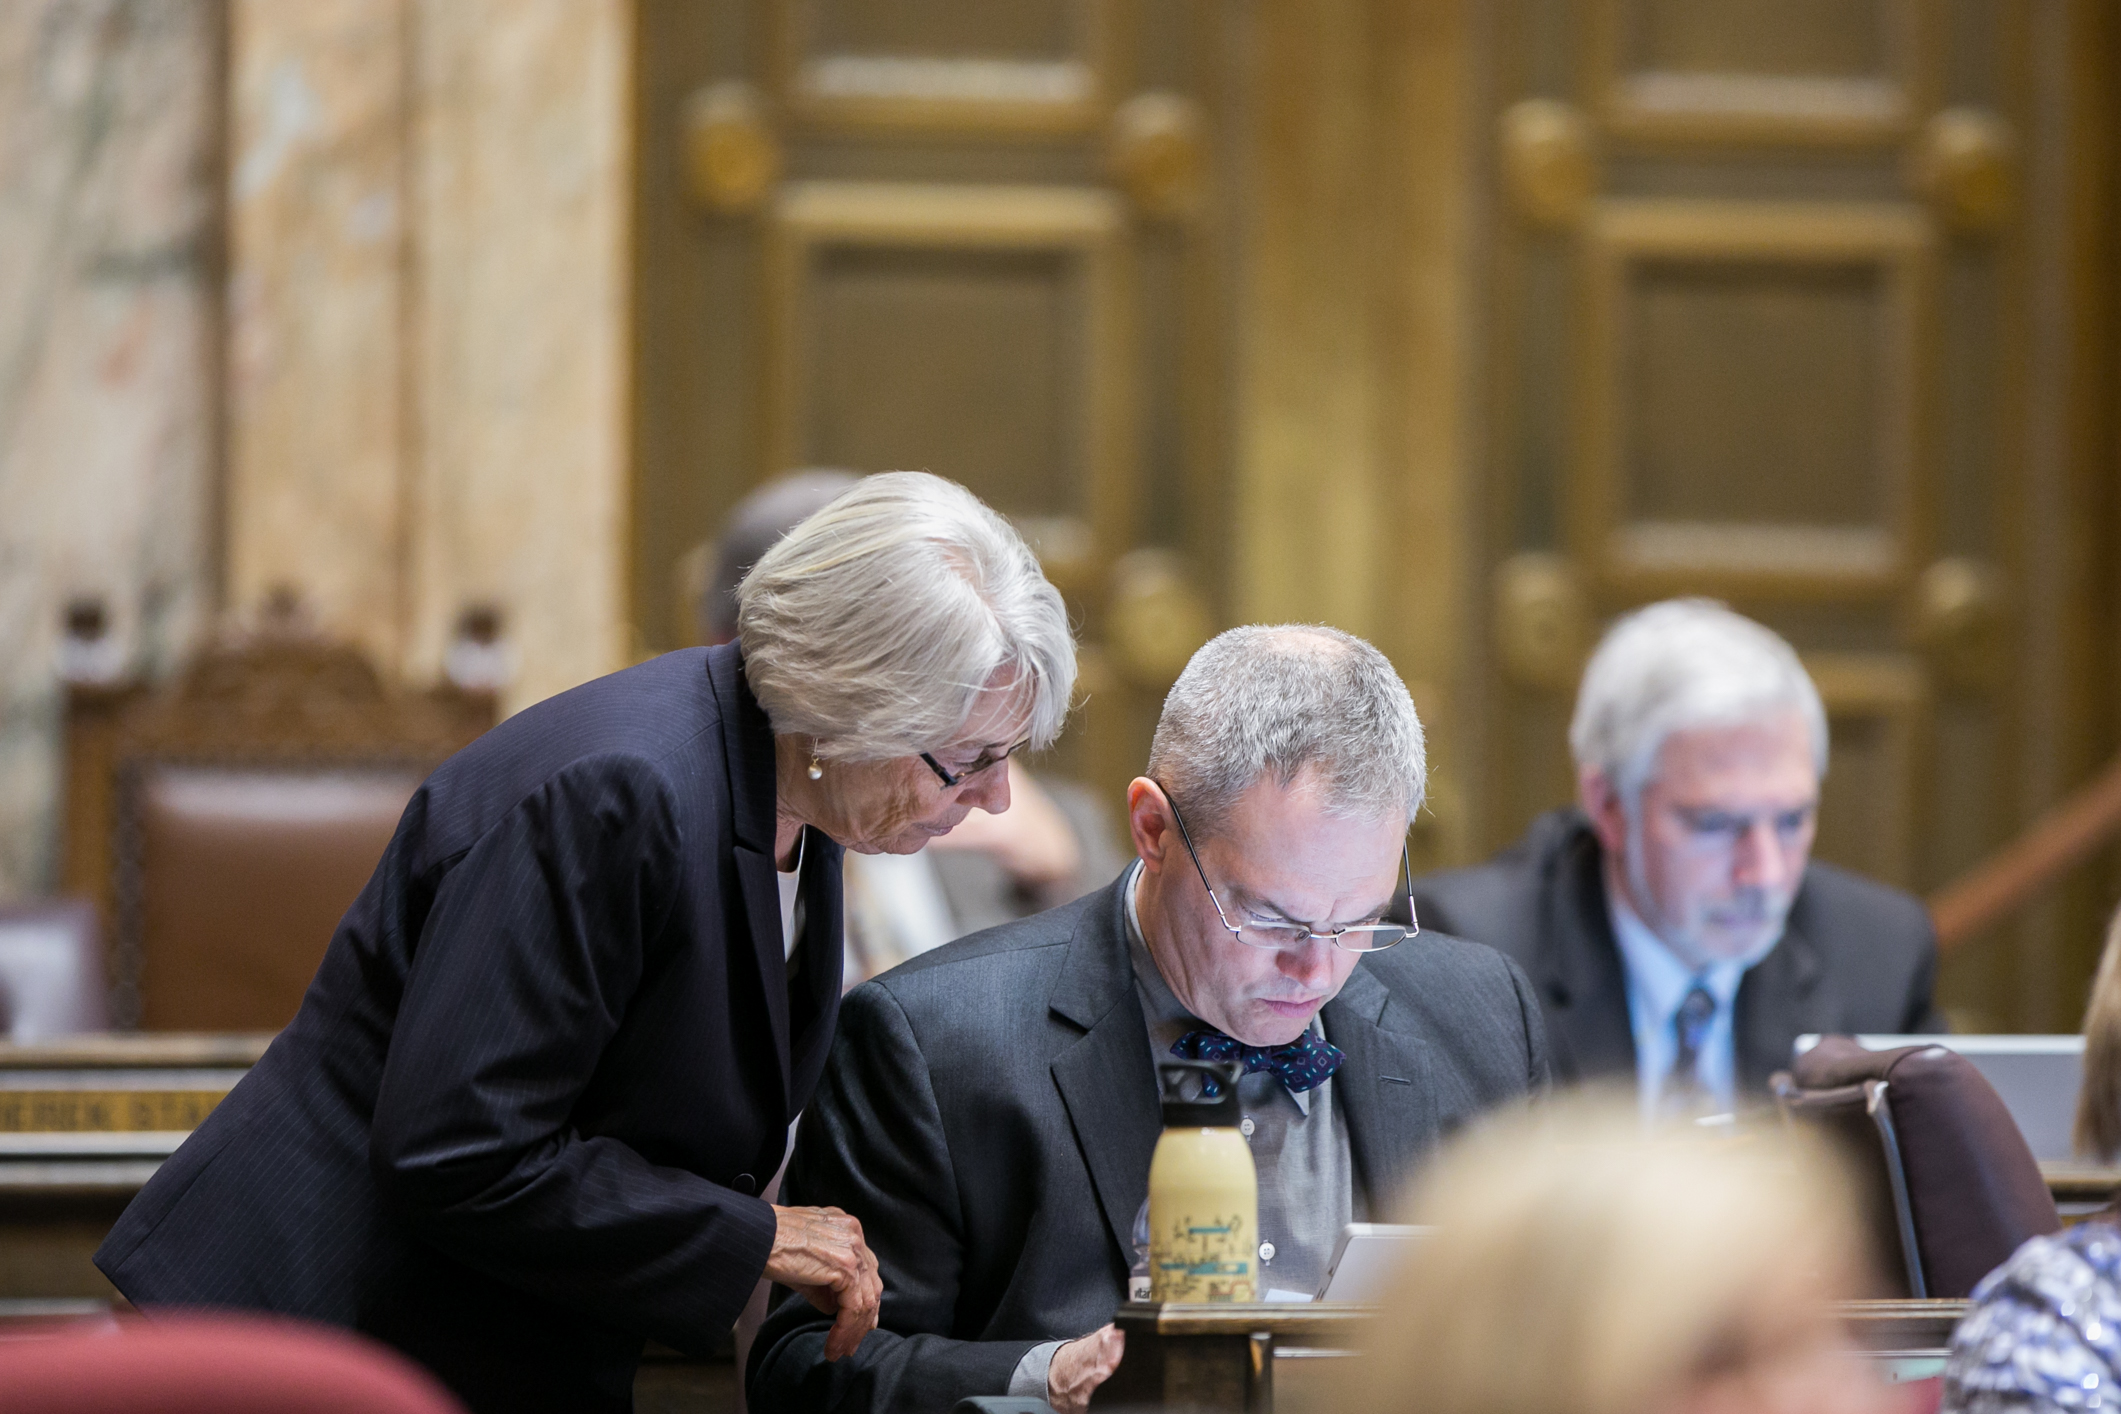 Rep. Kagi and I working on the Early Start bill on the floor of the House. My Sound Transit water bottle is in the foreground.